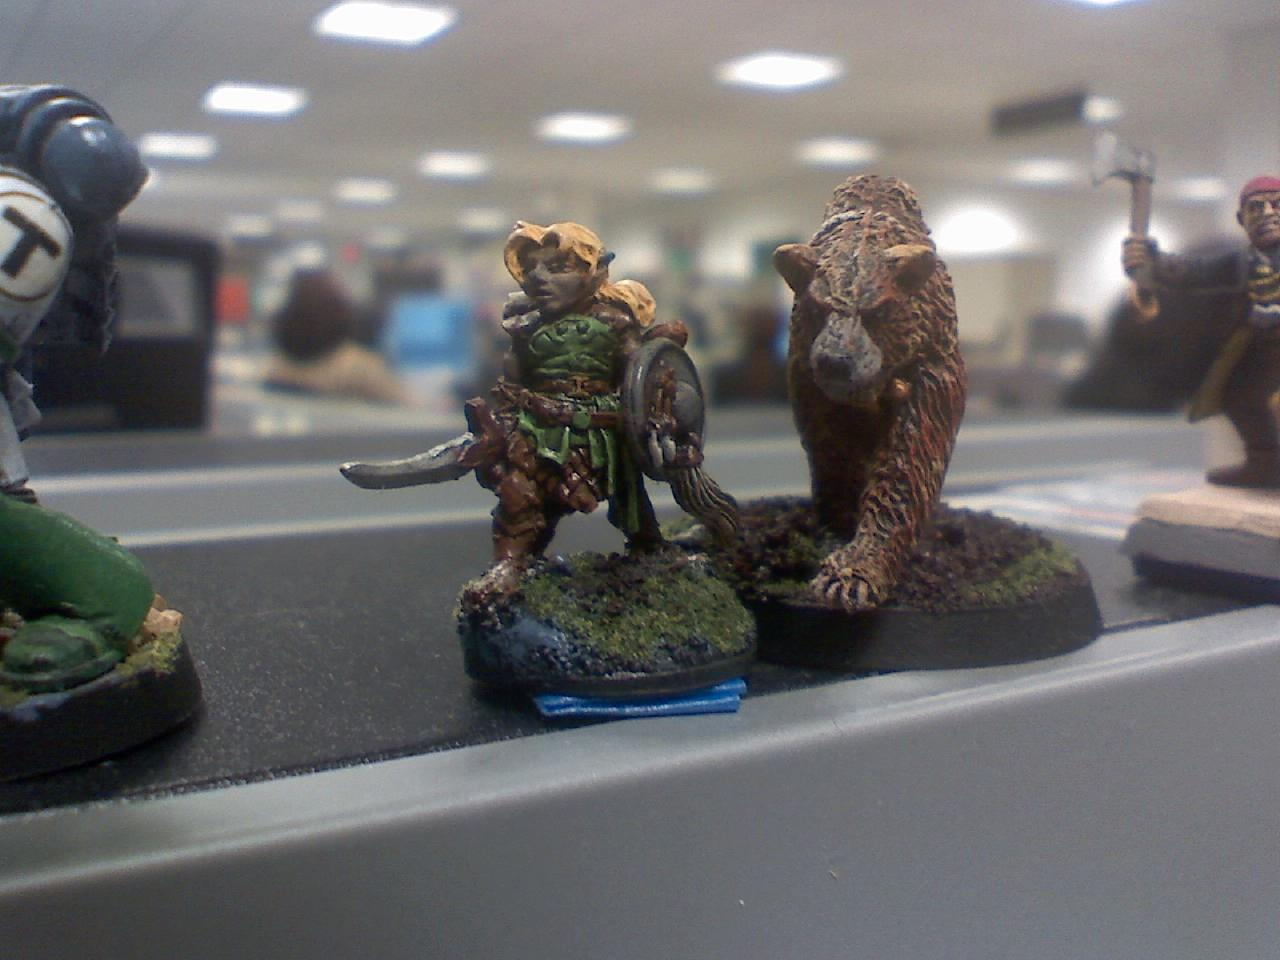 Bear, Brown, Character, Druid, Gnome, Green, Leather, Reaper, Shield, Sickle, Warhammer 40,000, Warhammer Fantasy